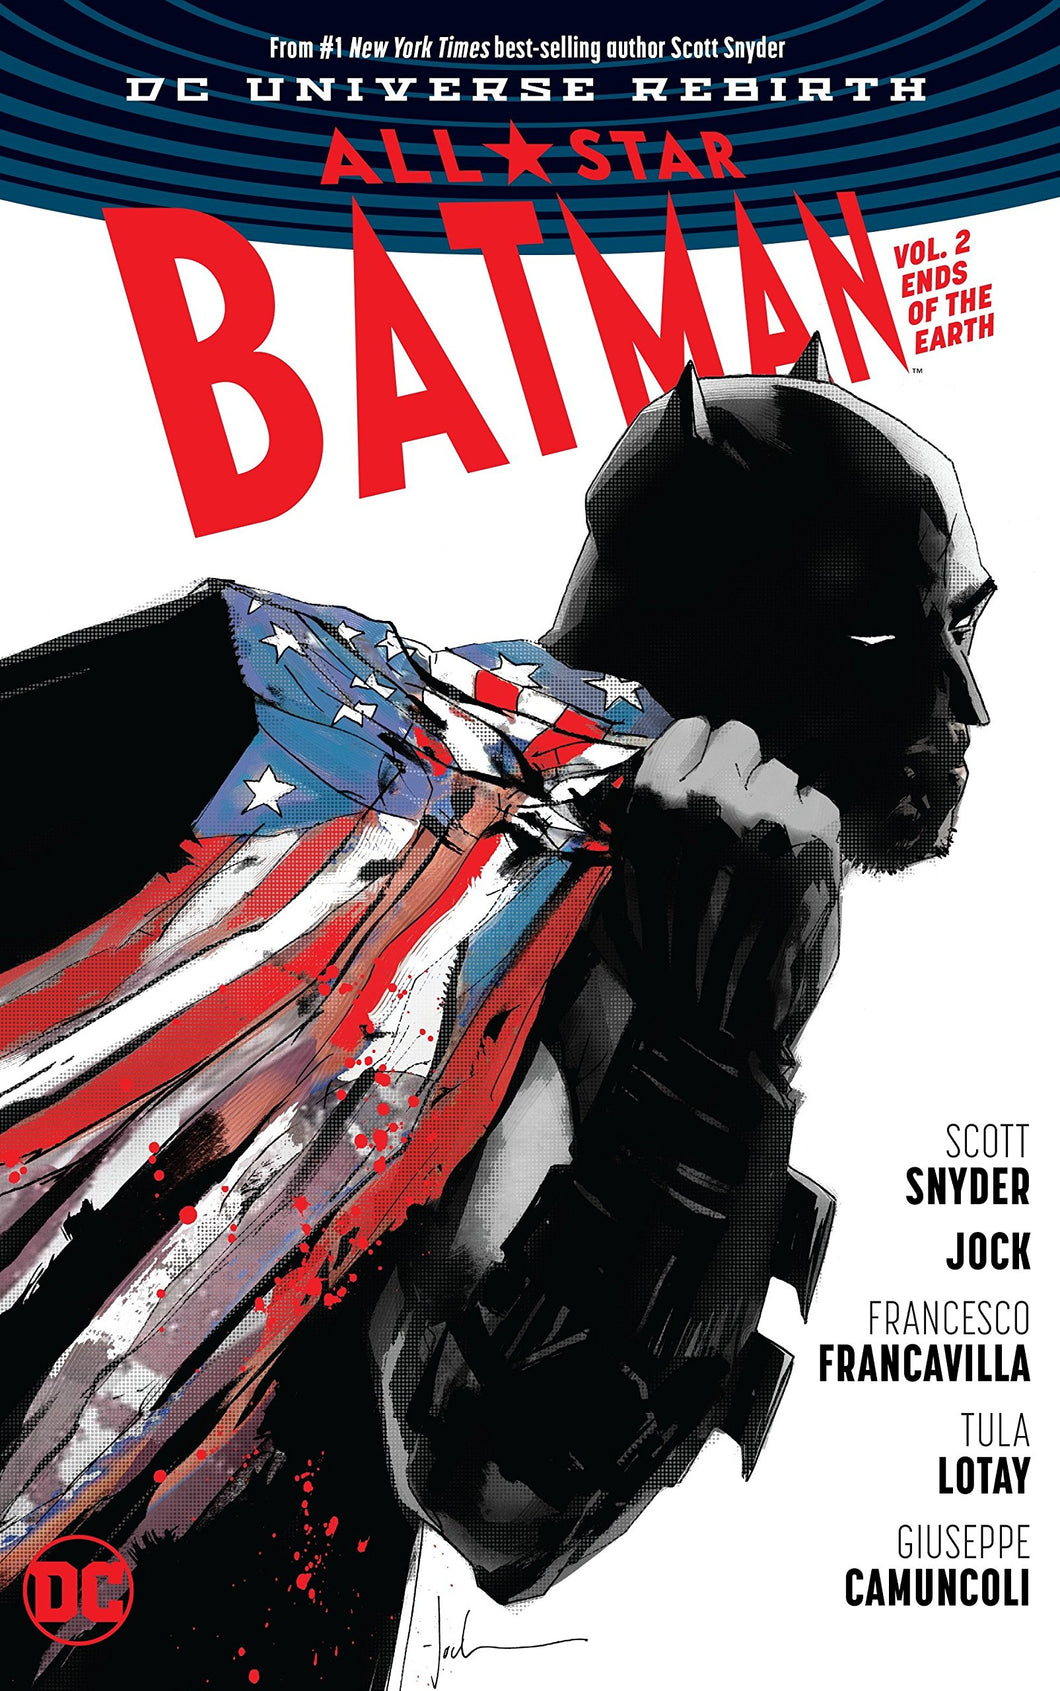 All-Star Batman Rebirth Vol. 2 : Ends Of The Earth